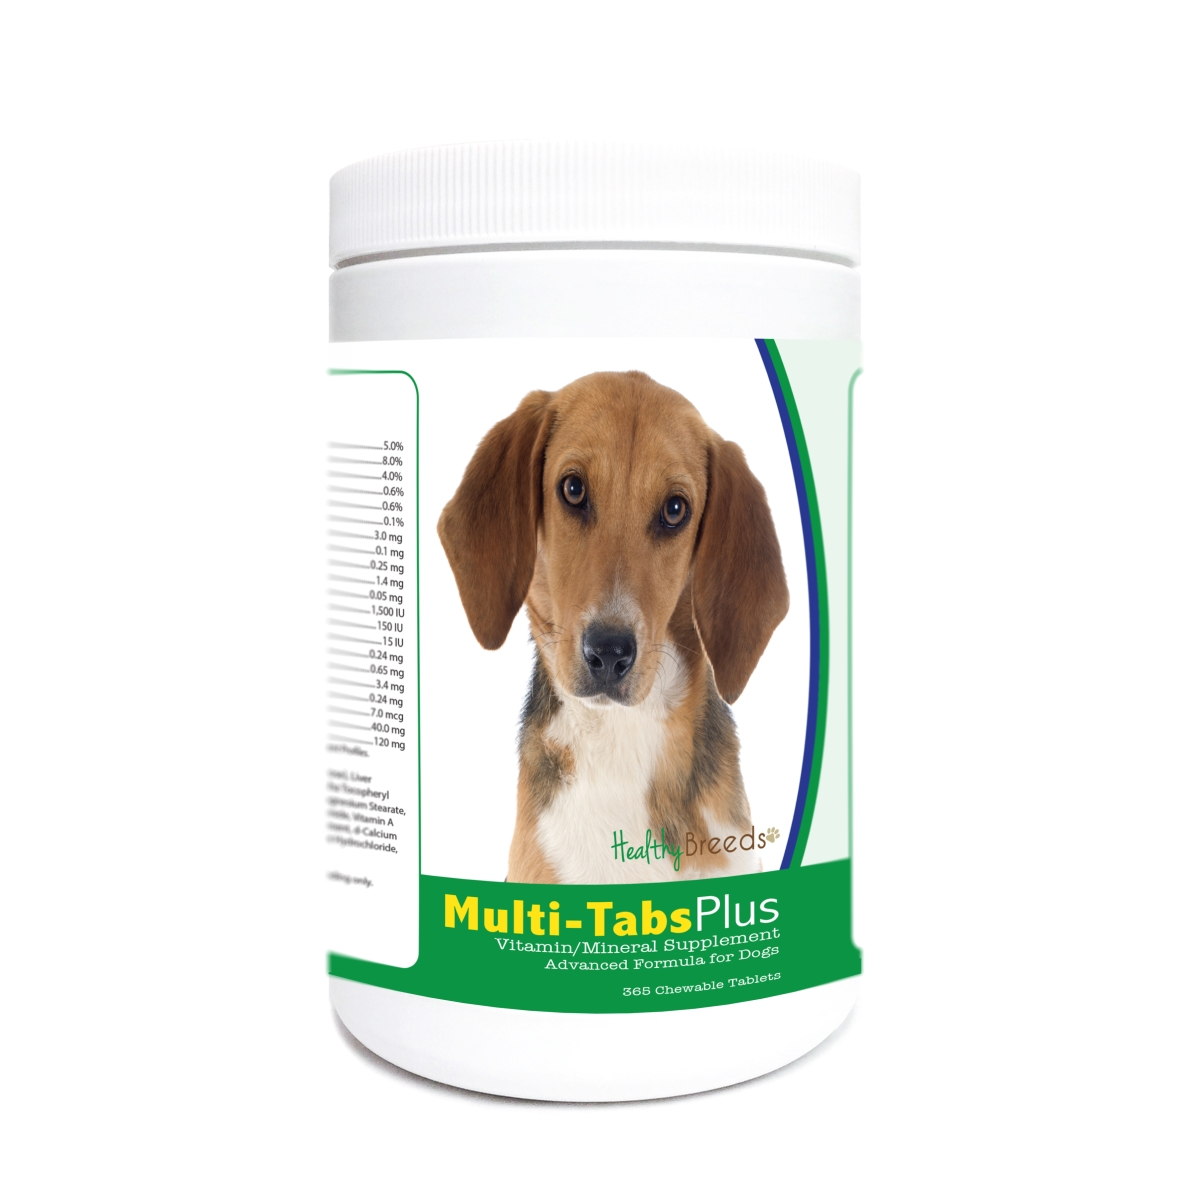 Healthy Breeds 840235174653 Harrier Multi-Tabs Plus Chewable Tablets - 365 Count